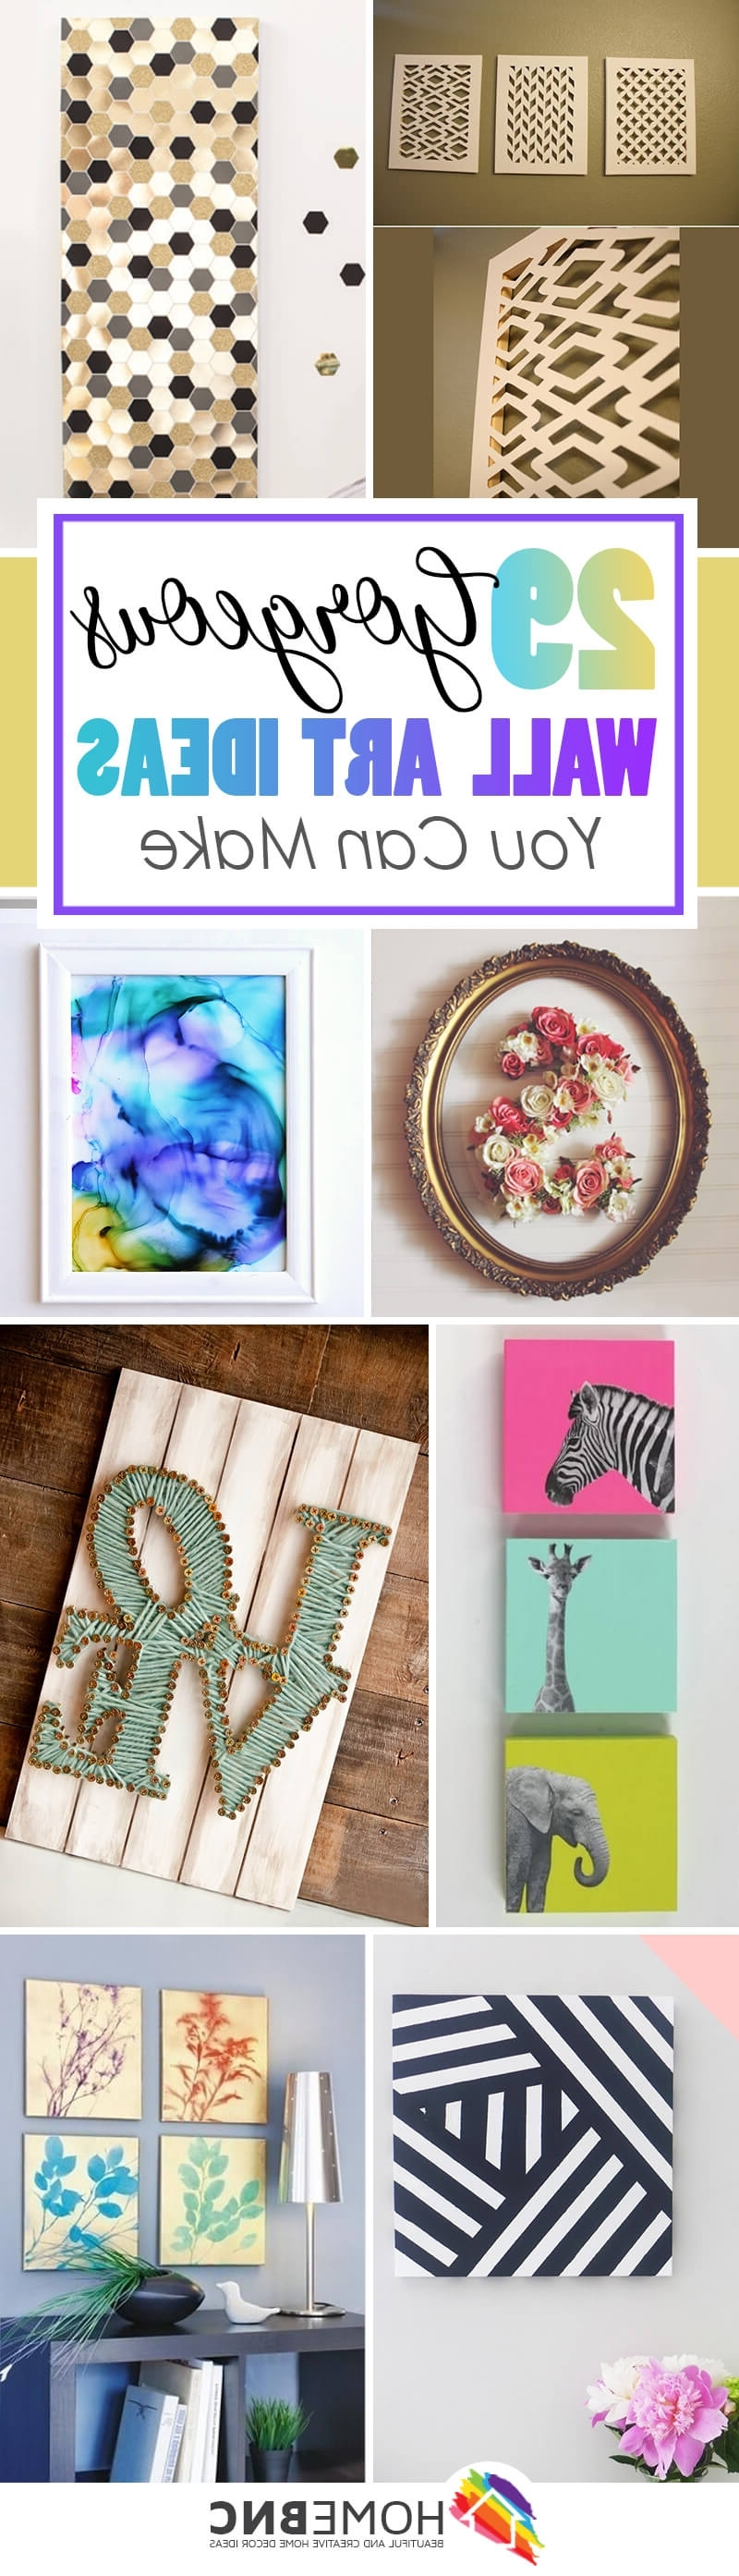 2017 Diy Wall Art Projects Intended For 36 Best Diy Wall Art Ideas (Designs And Decorations) For  (View 3 of 15)